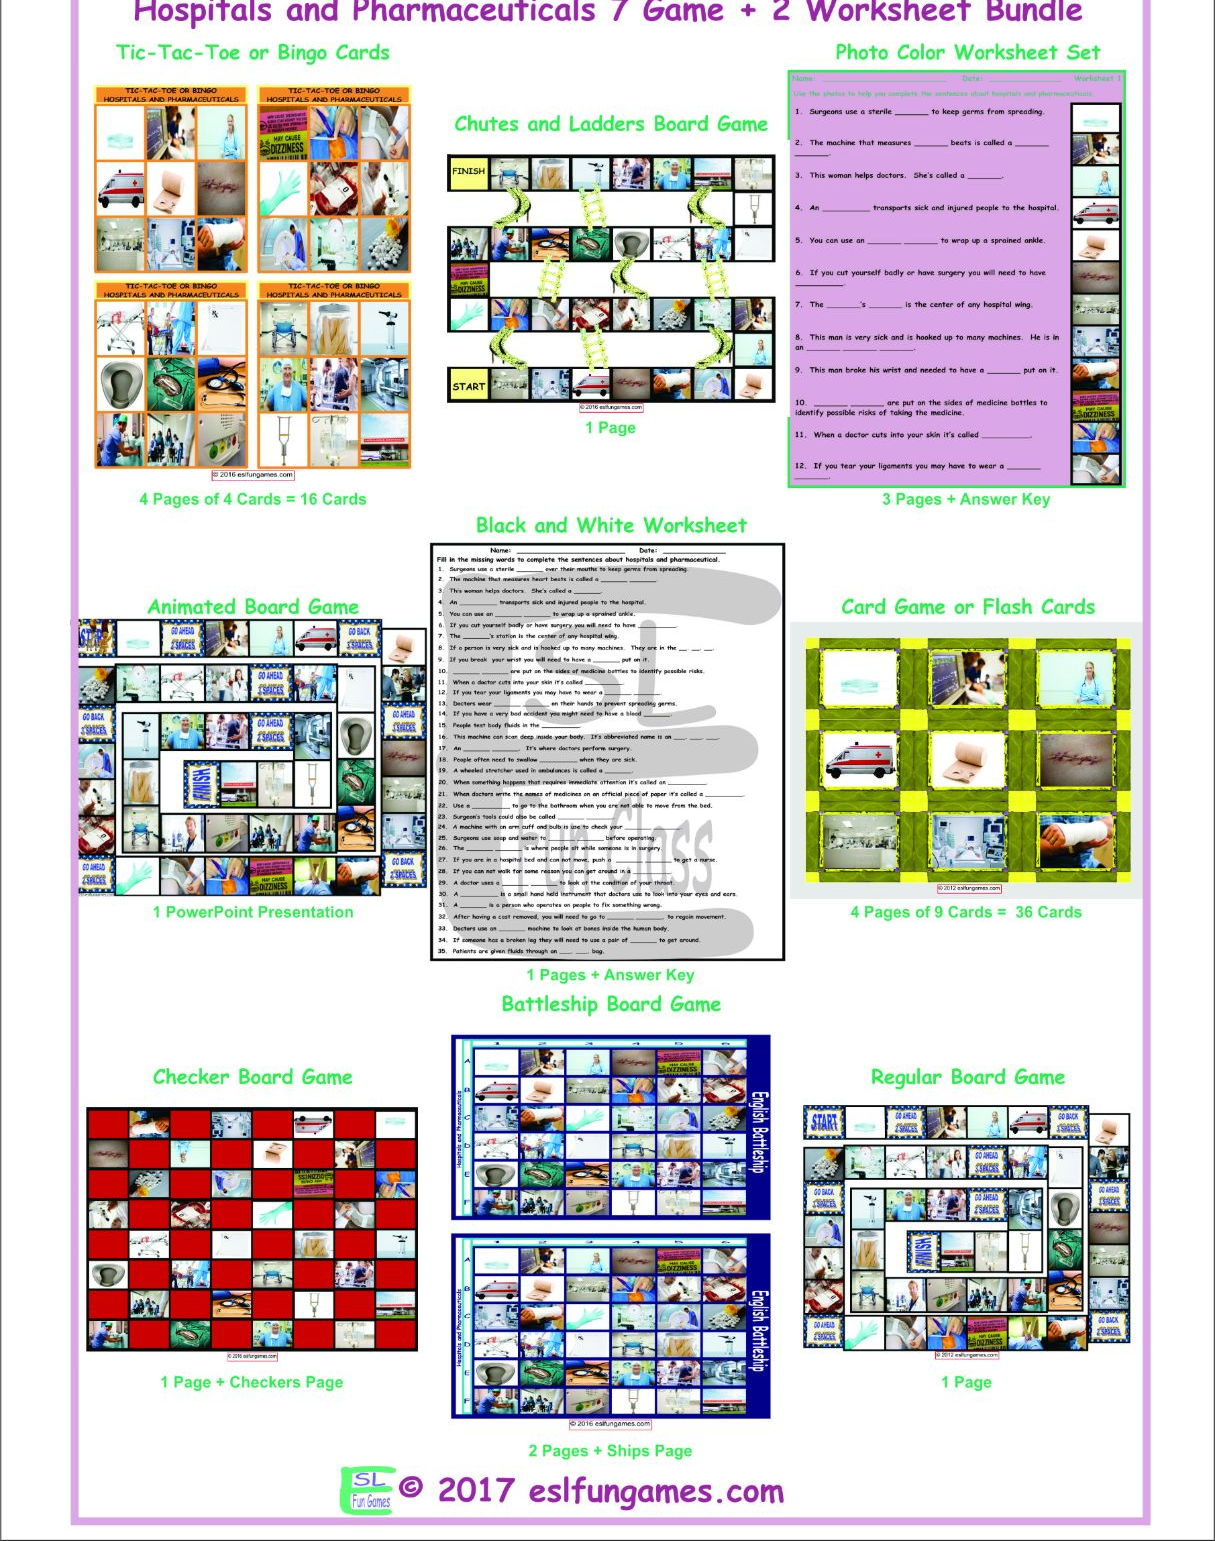 Hospitals And Pharmaceuticals 7 Game Plus 2 Worksheet